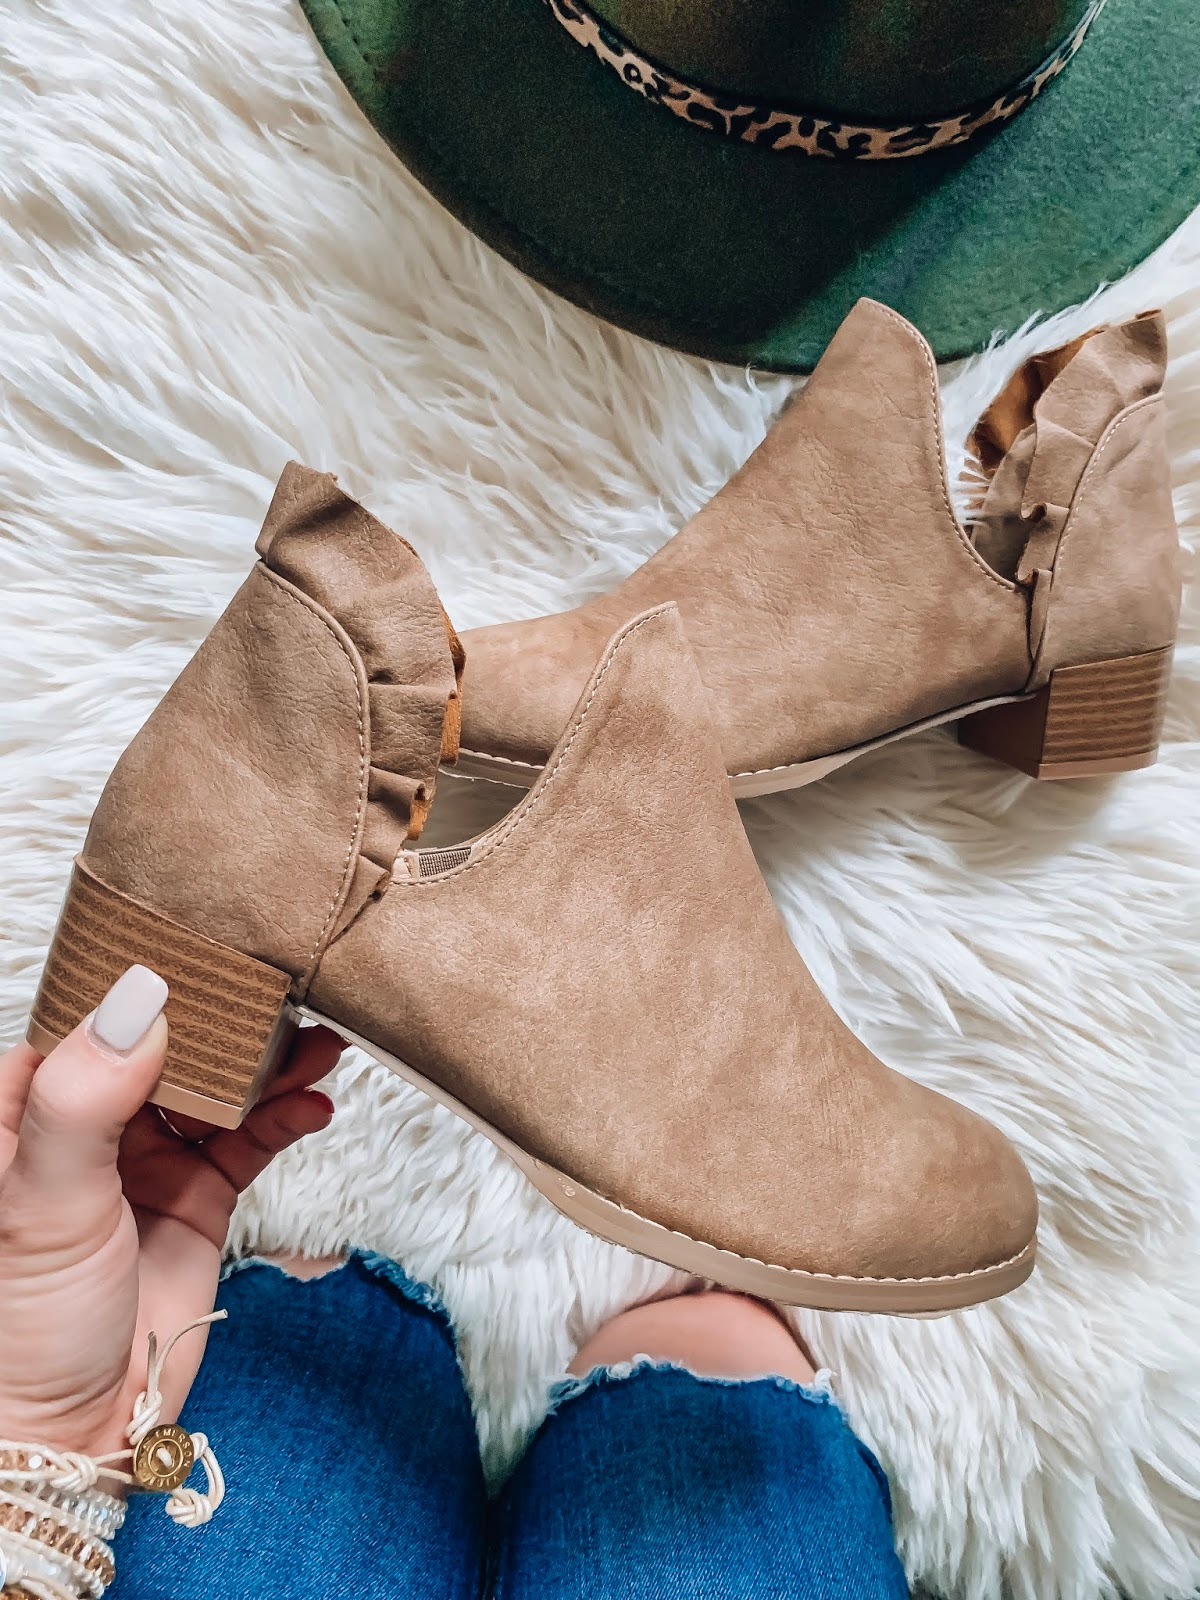 Recent Amazon Finds: Sweaters & Cardigans Edition - Under $40 Ruffle Back Booties - Something Delightful Blog #FallStyle #AmazonFashion #AffordableStyle